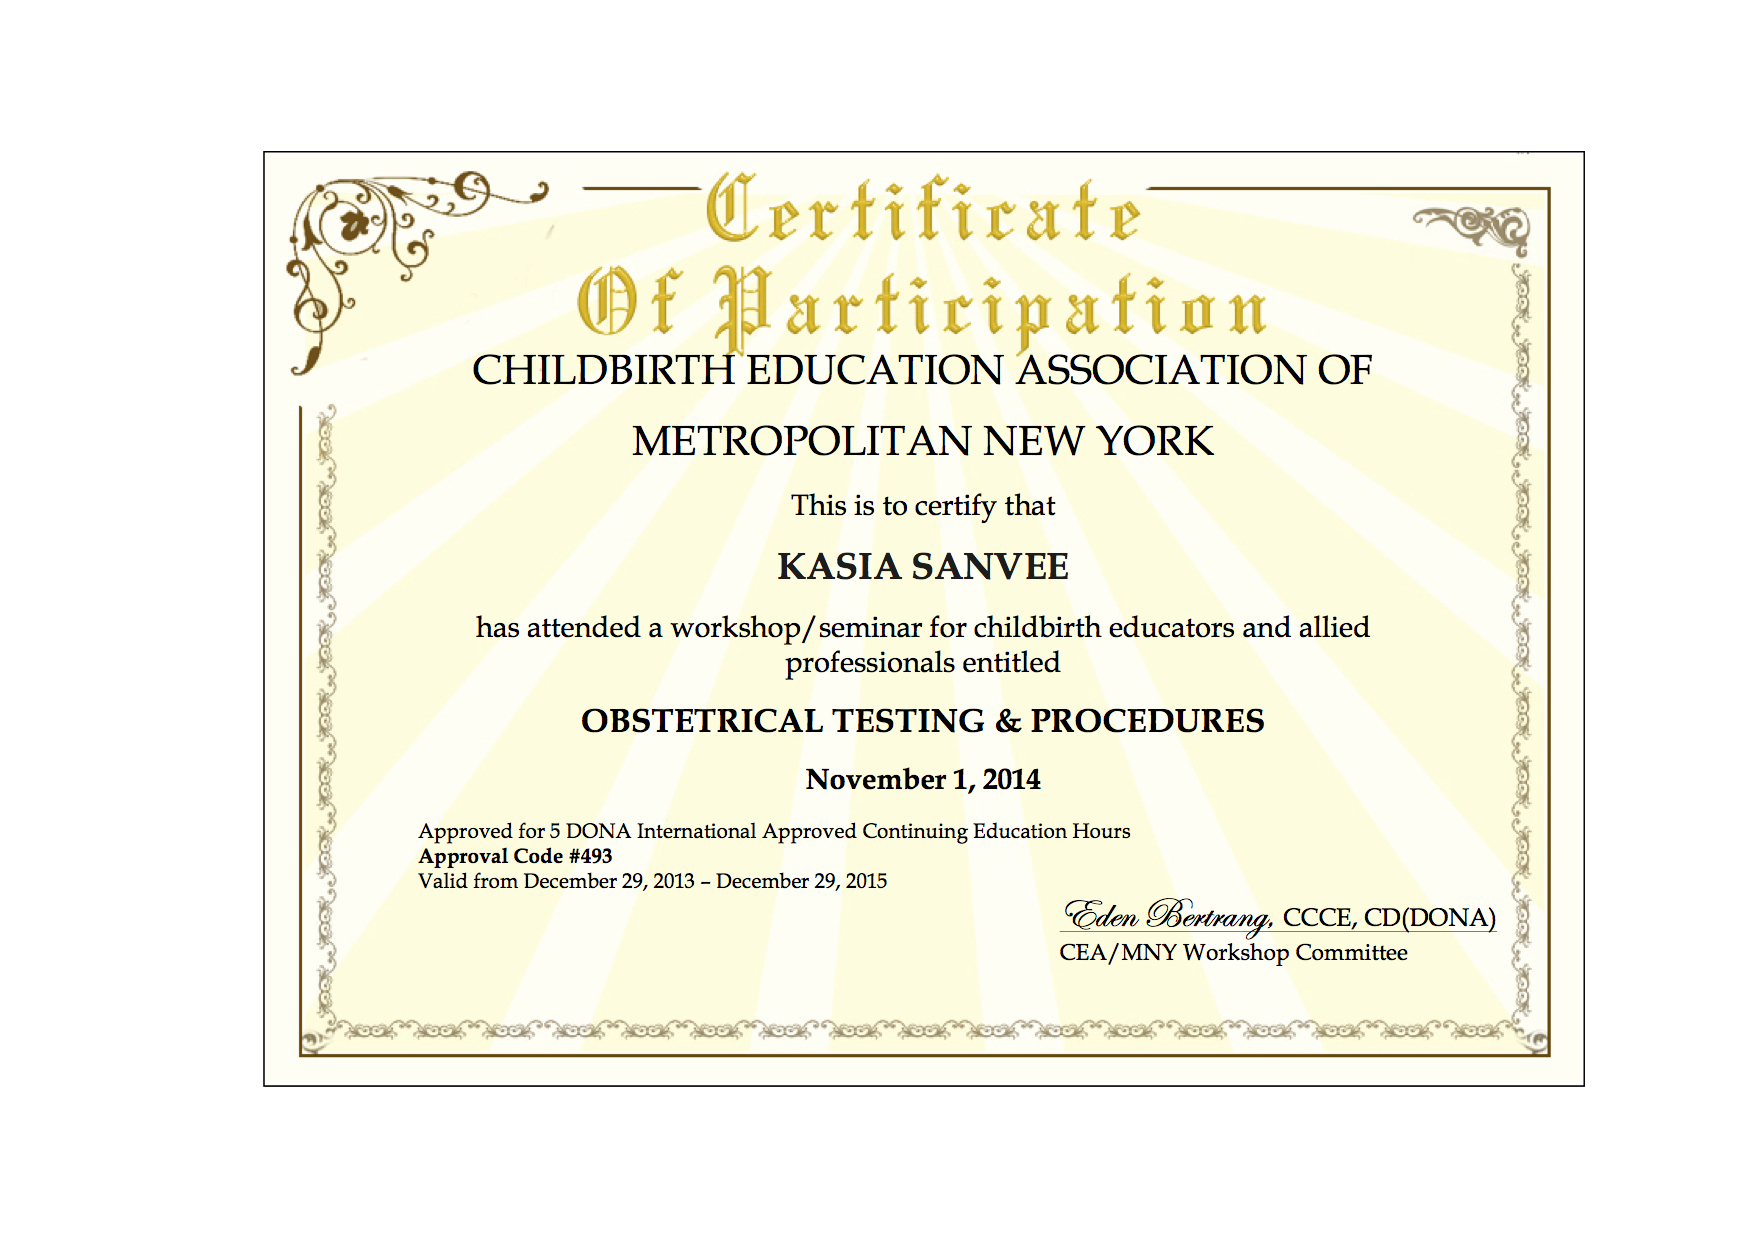 CEA_MNY_Obstetrical Testing and Procedures.jpg